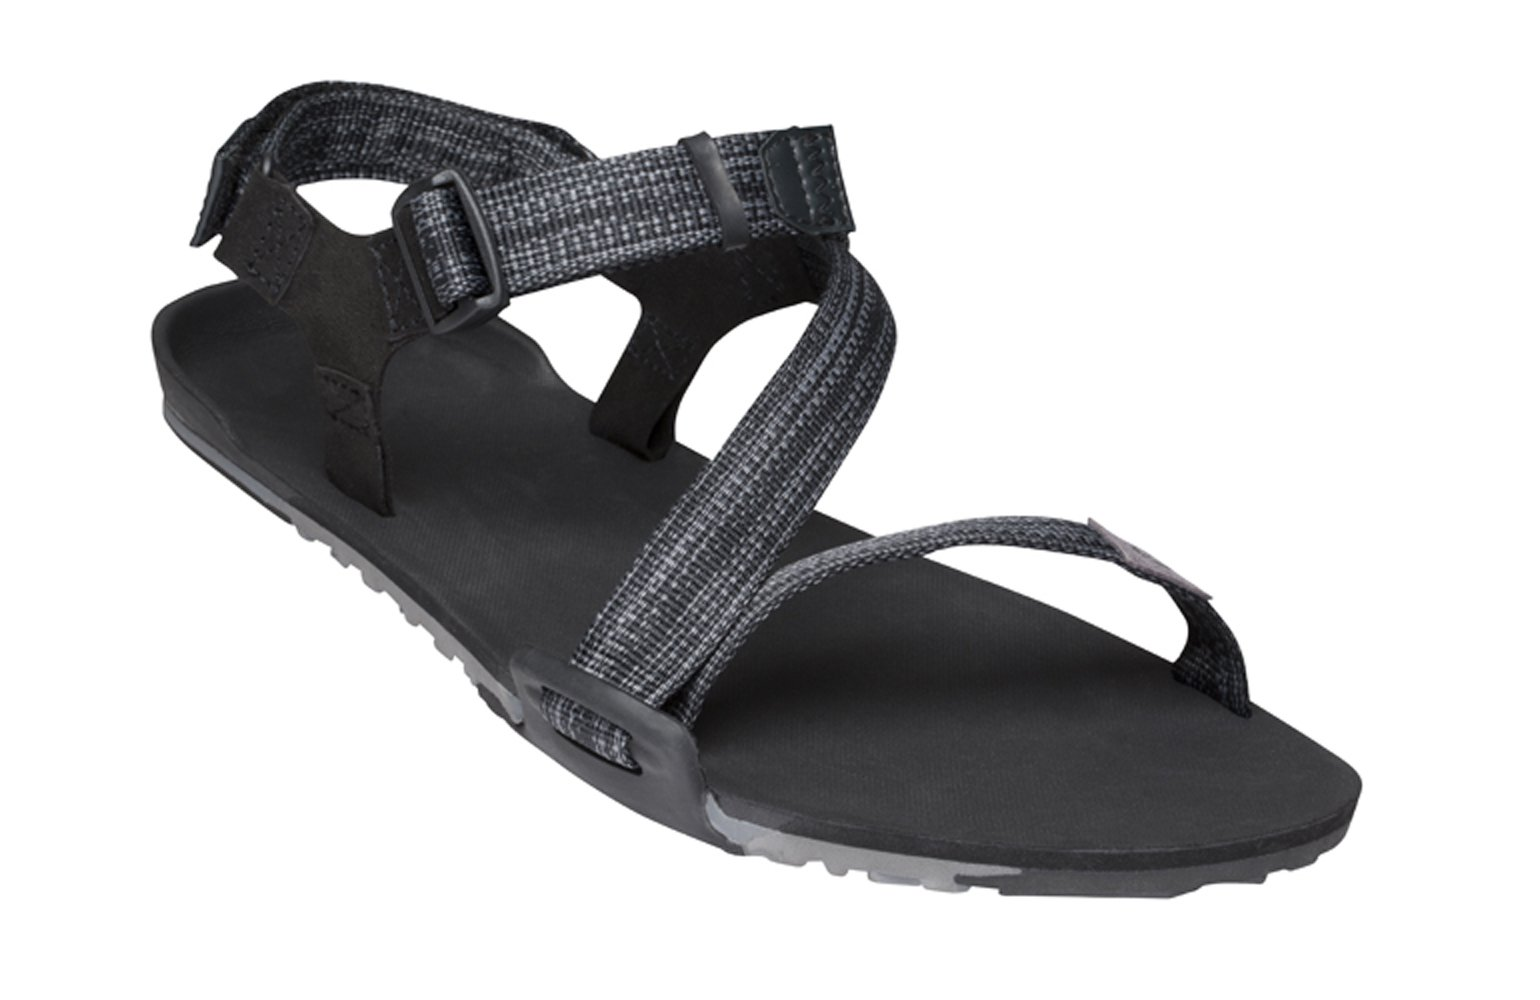 Xero Shoes Z Trail Lightweight Barefoot Inspired